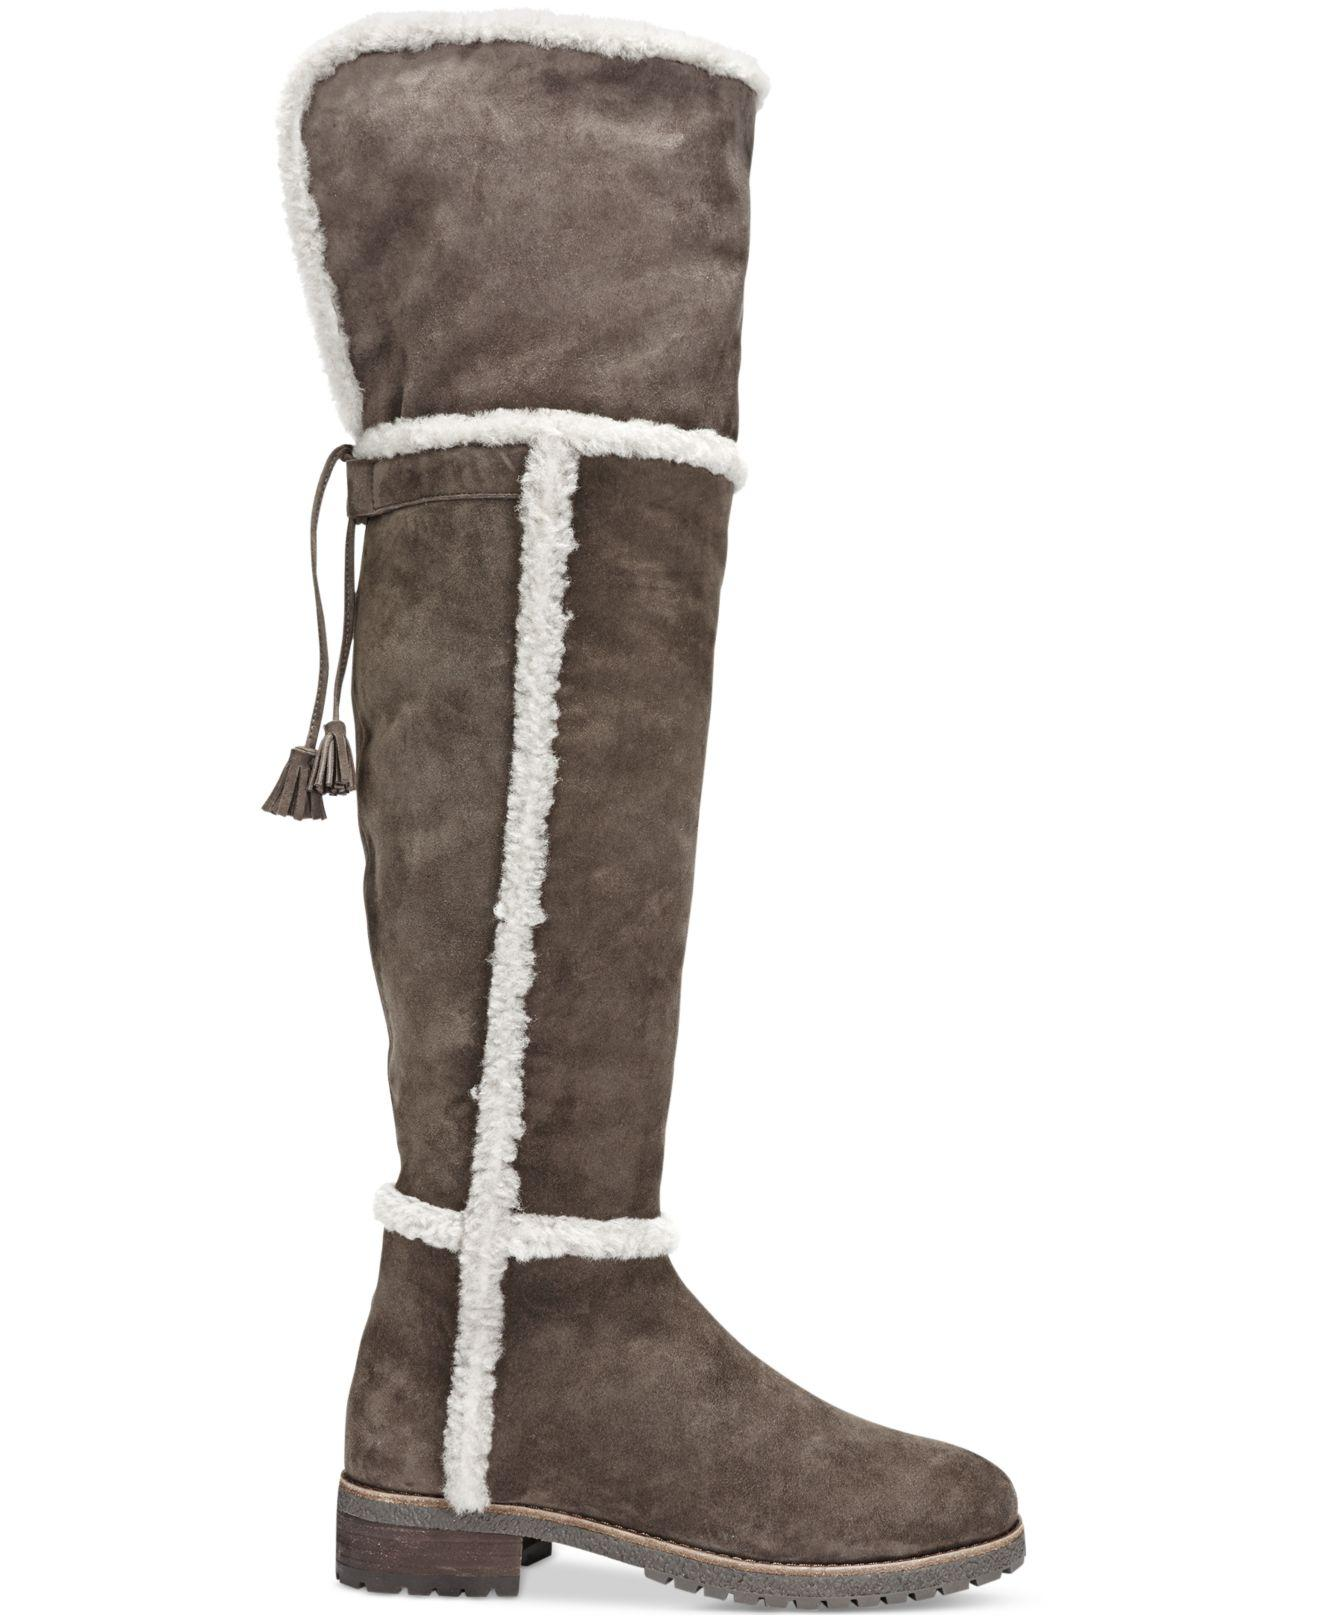 648c7e06e7c Lyst - Frye Women s Tamara Shearling Over-the-knee Boots in Brown